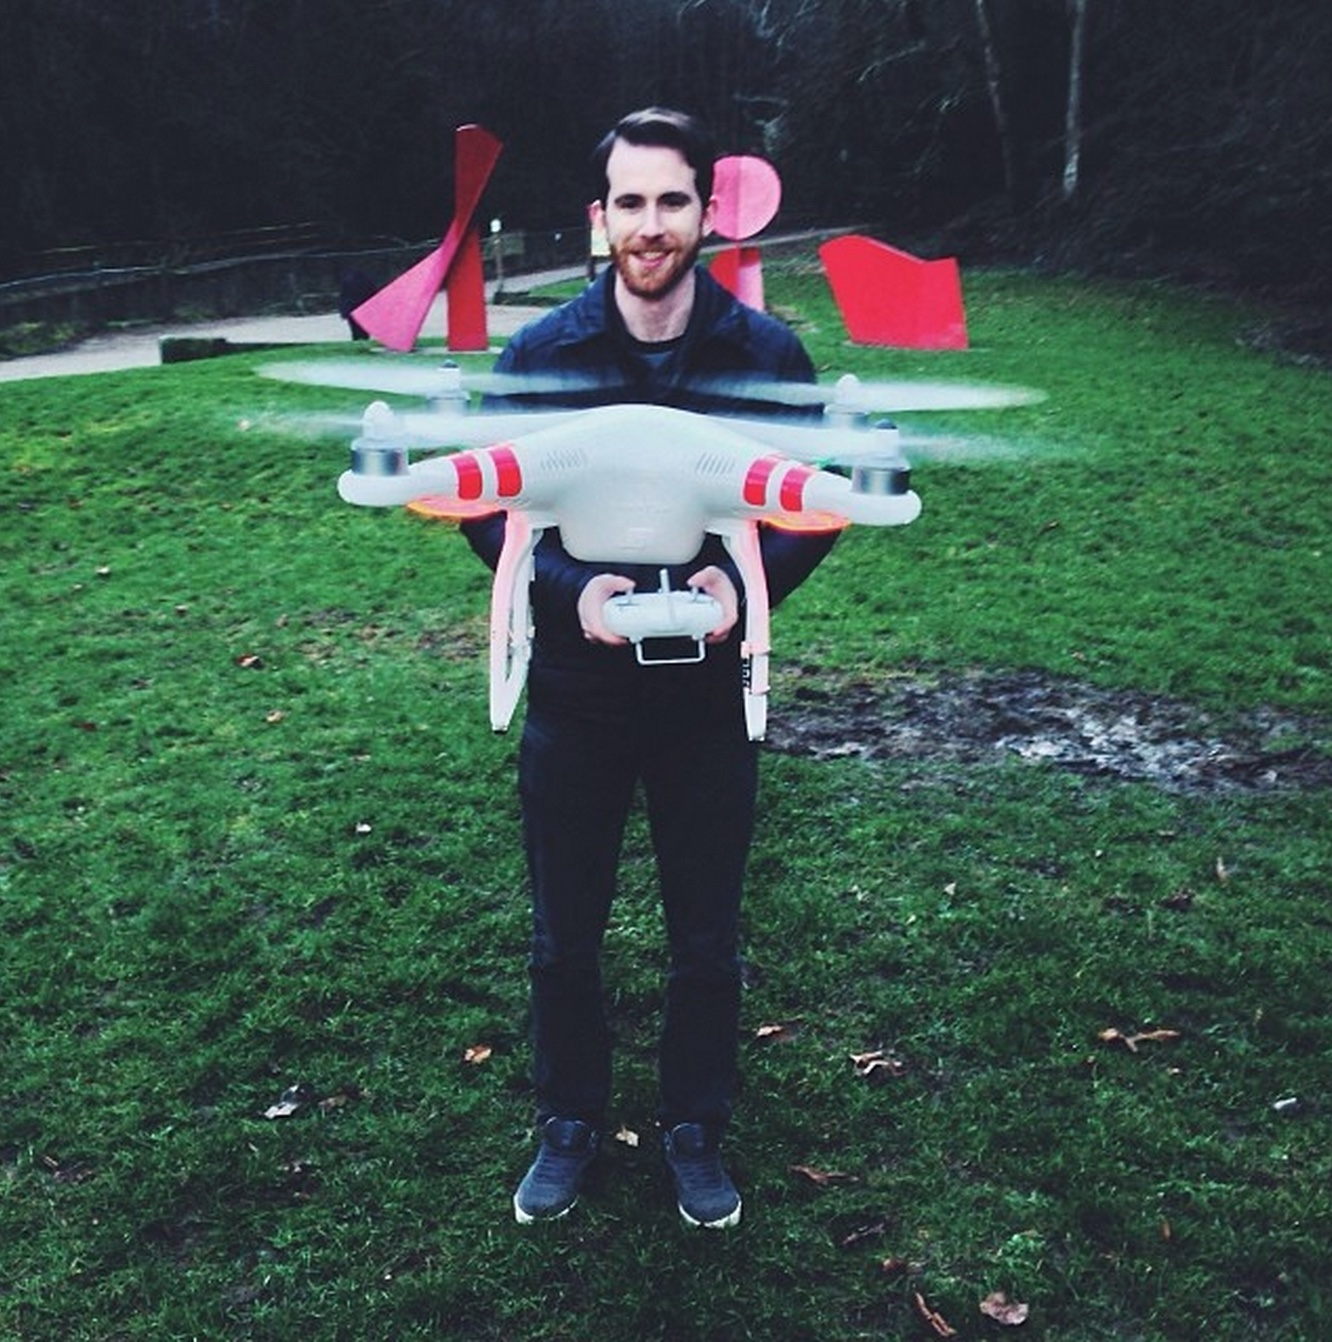 Flying quadcopters